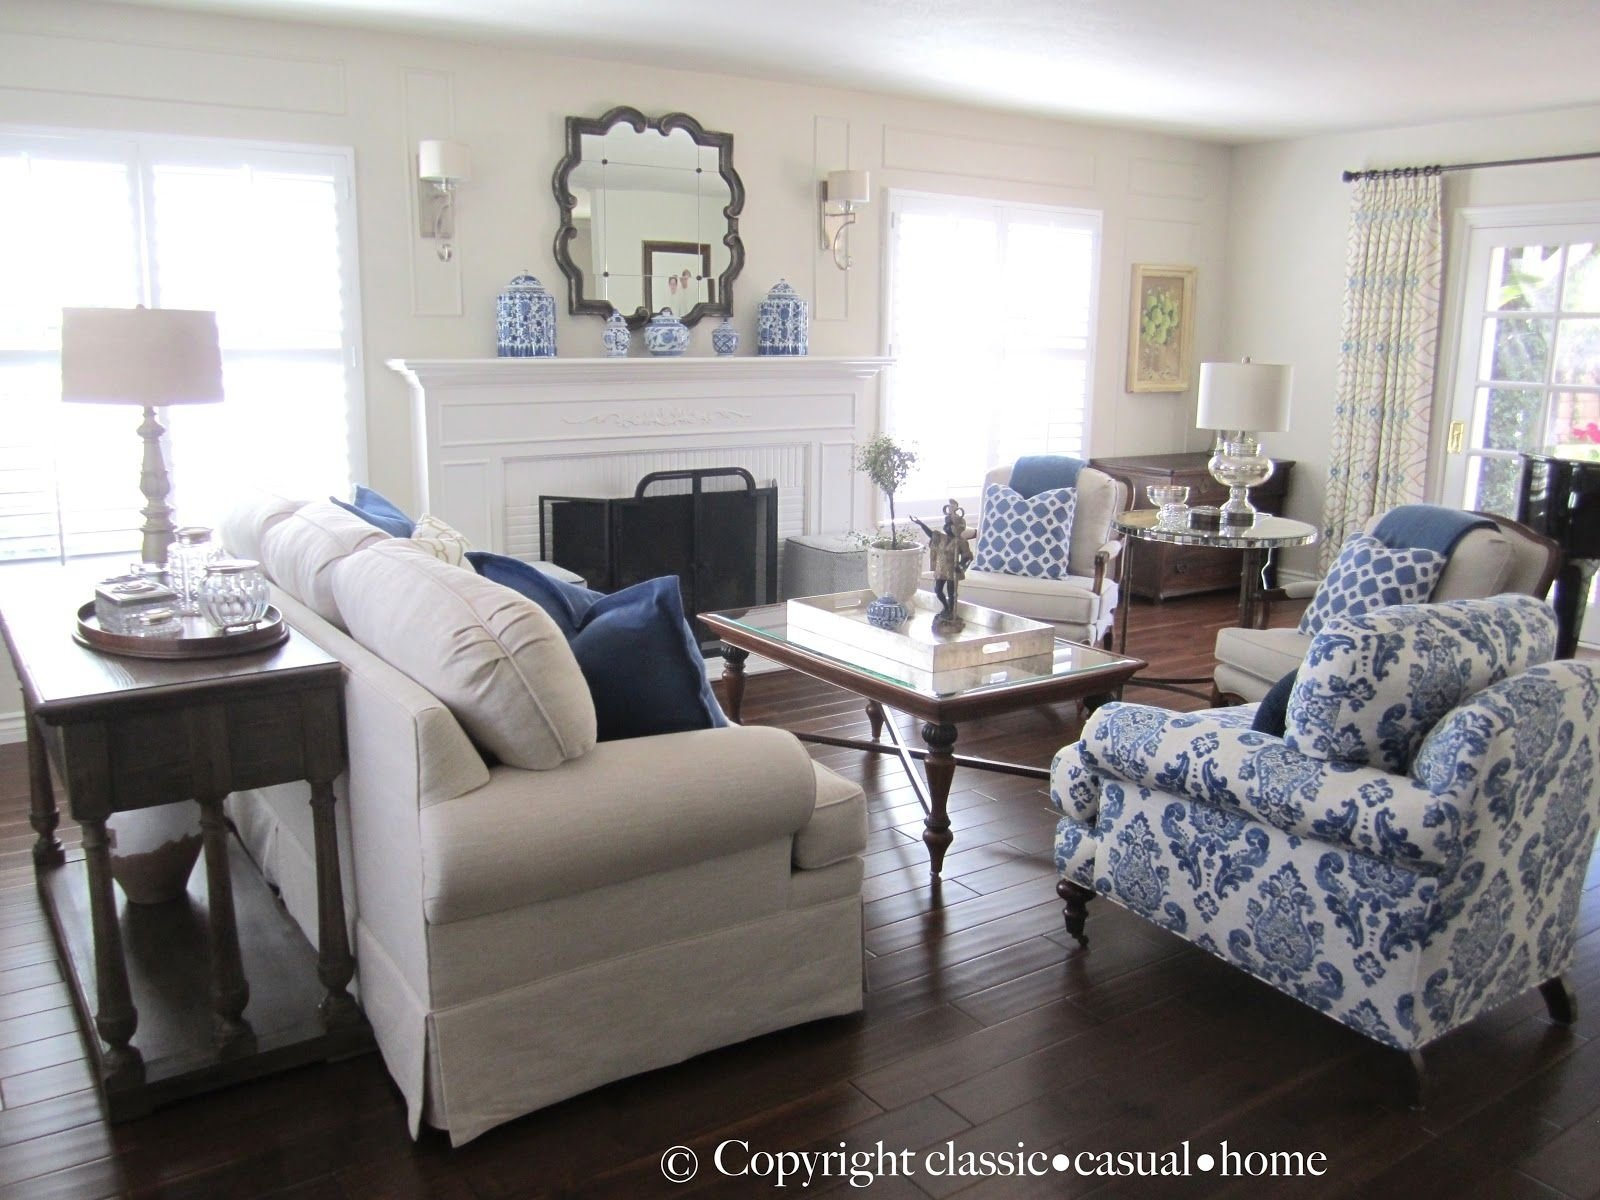 10 Stunning Blue And White Living Room Ideas blue white and silver timeless design timeless design living 2021